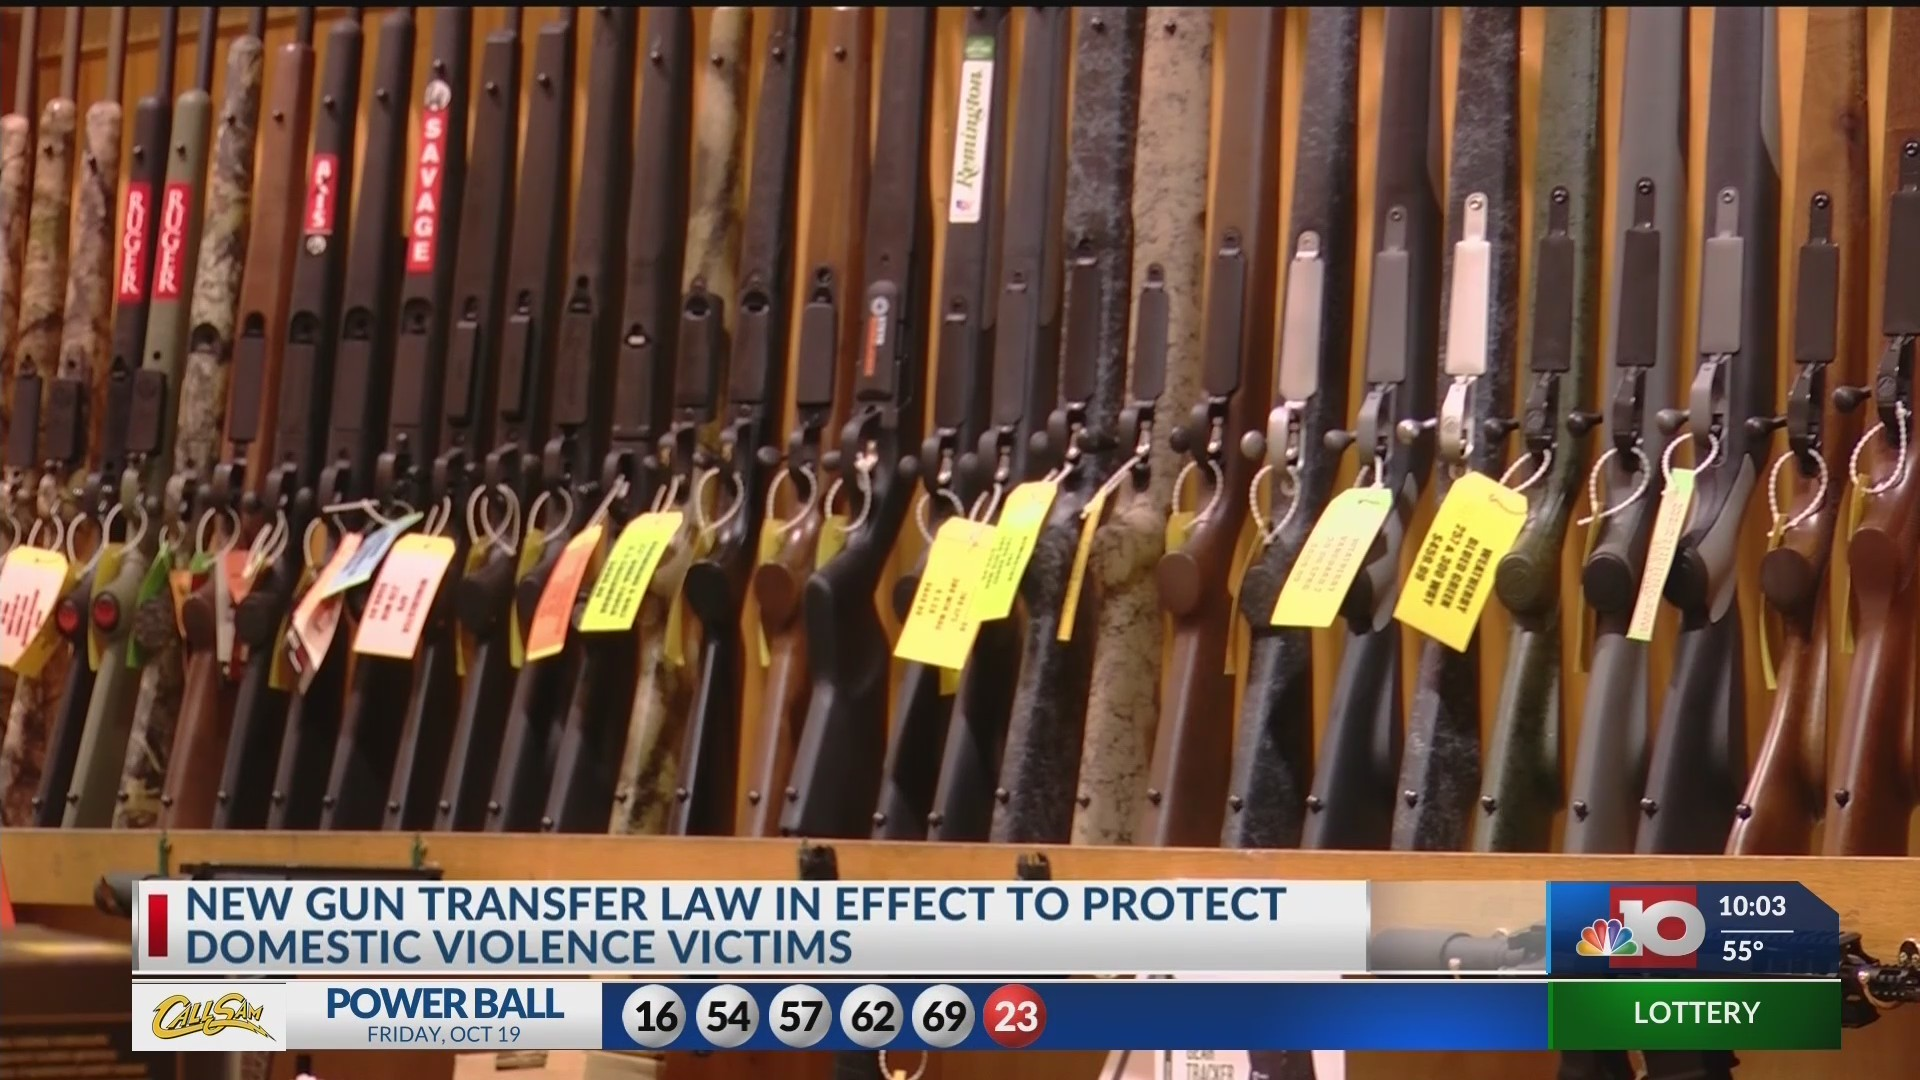 New gun law in effect to protect domestic violence victims